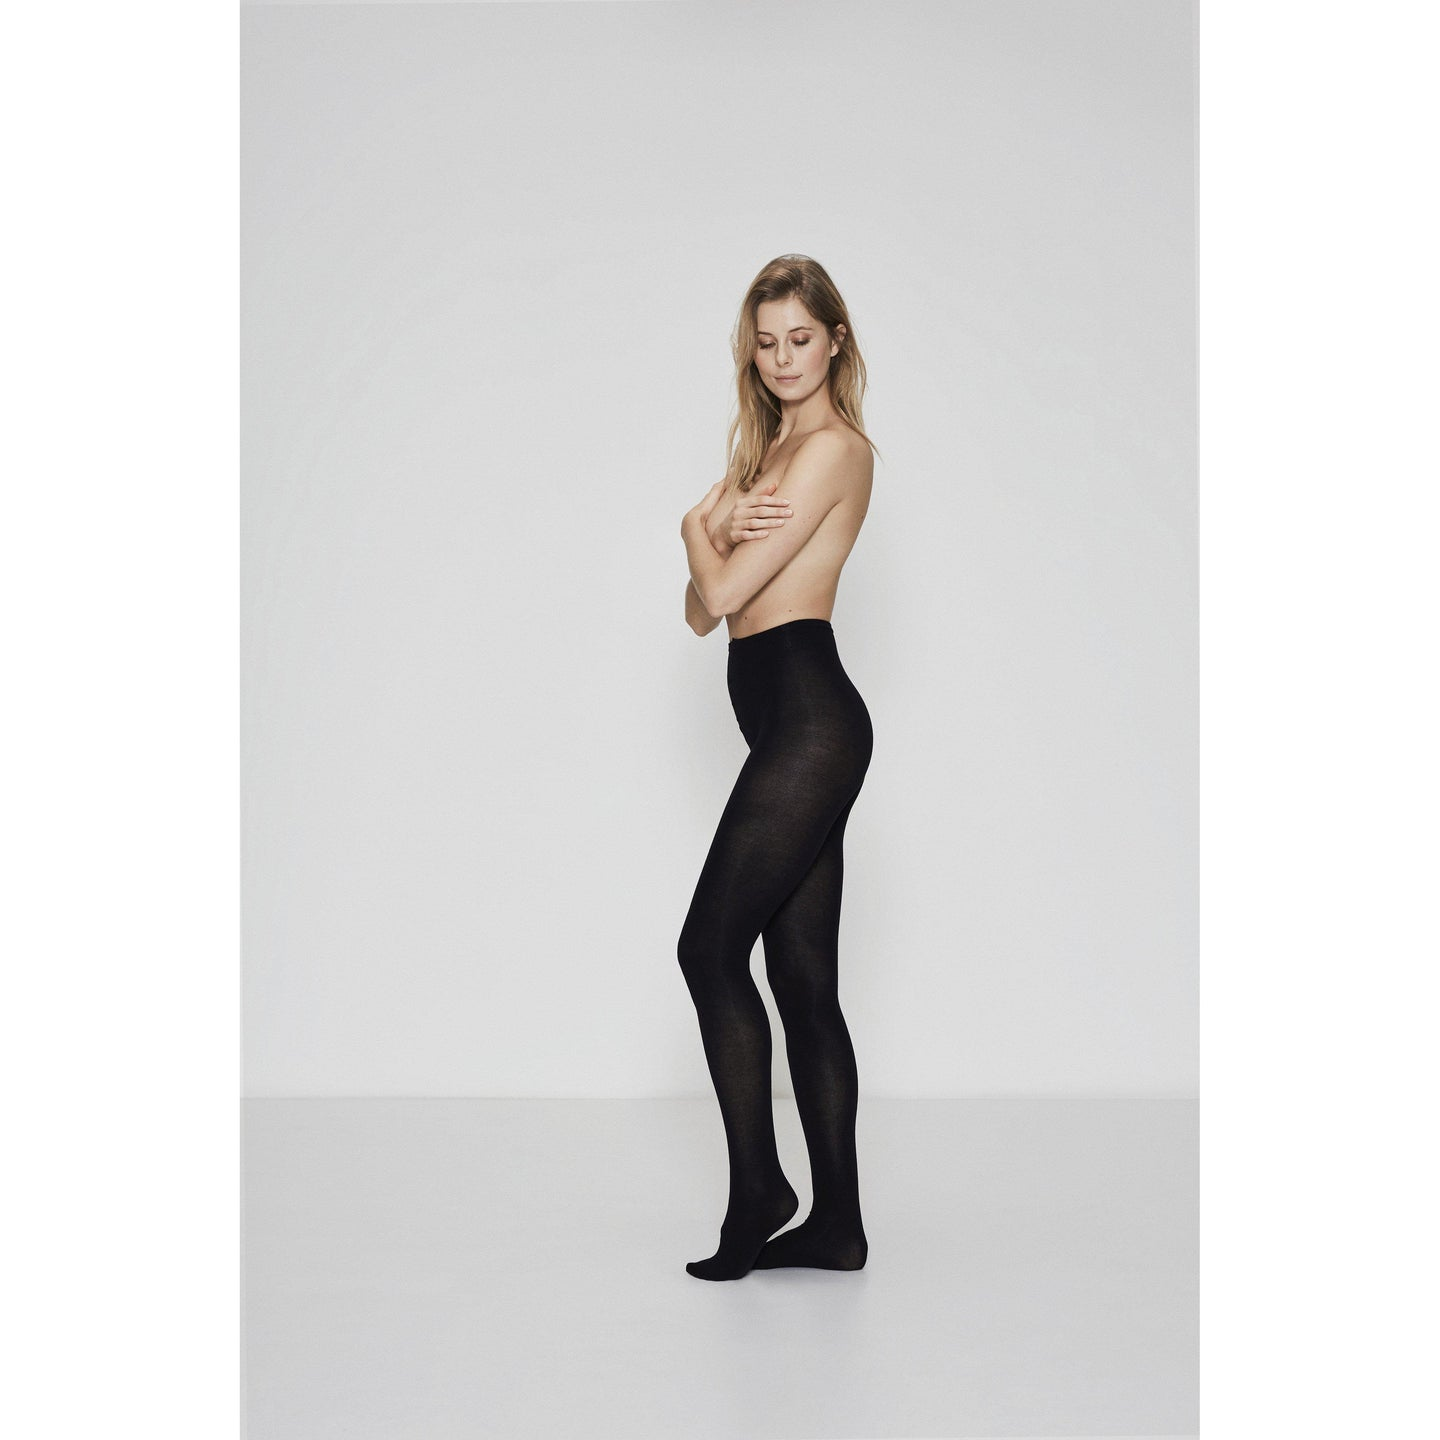 TIGHTS BAMBOO SORT-JBS OF DENMARK-minlillebutik